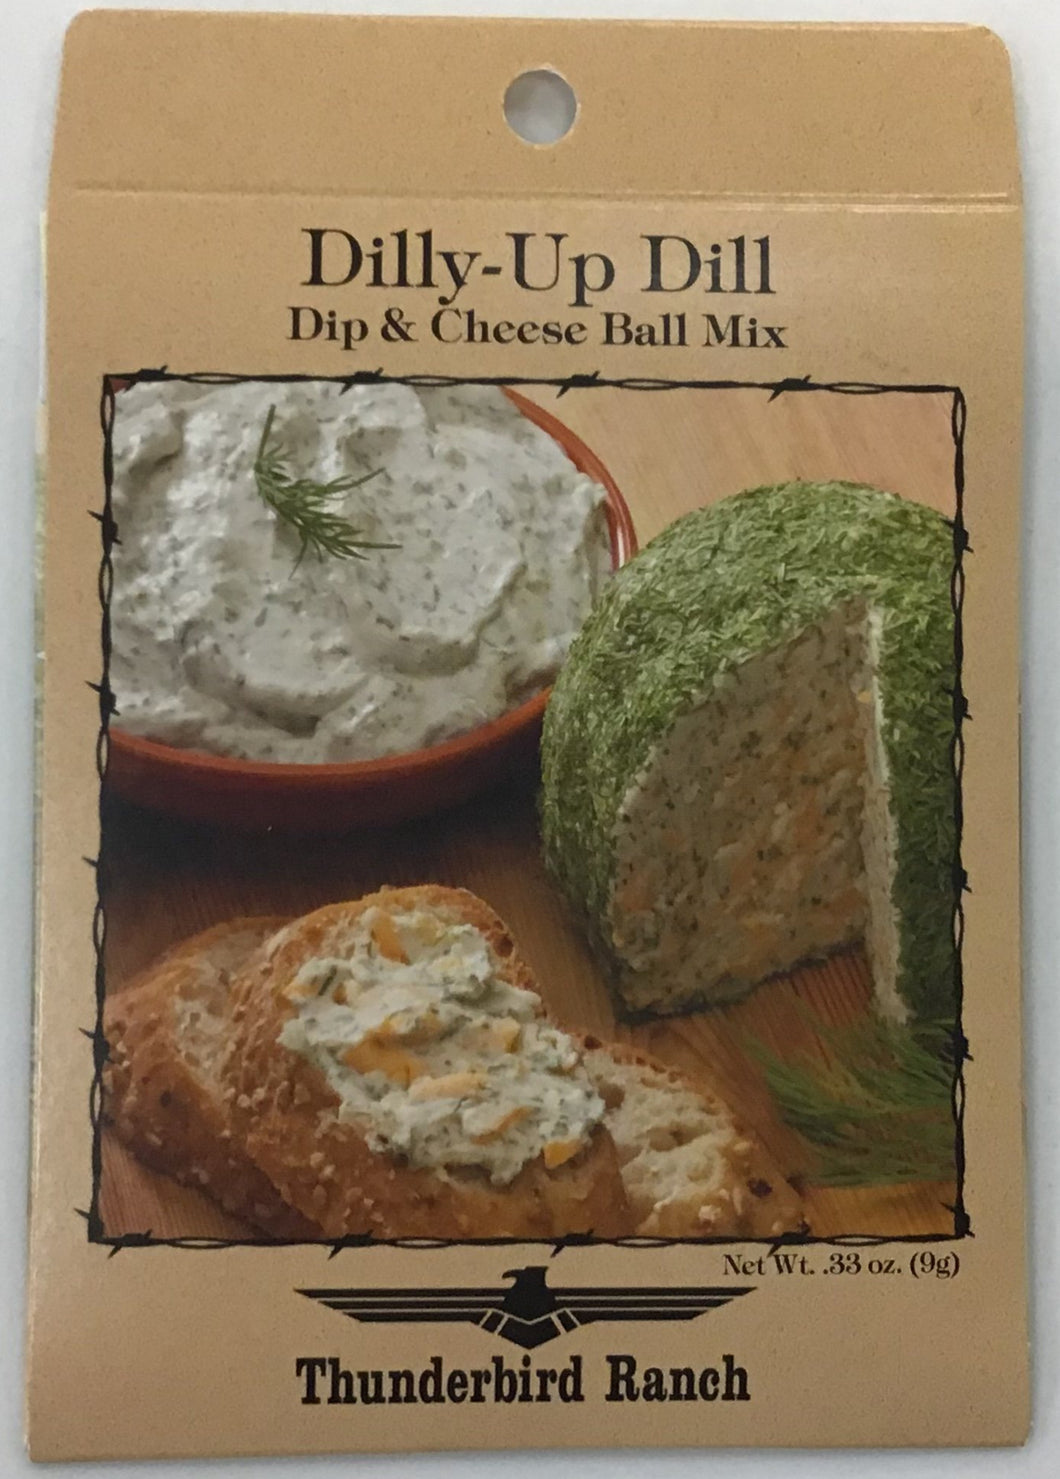 Dakota Seasonings Dilly-Up Dill Dip and Cheese Ball Mix